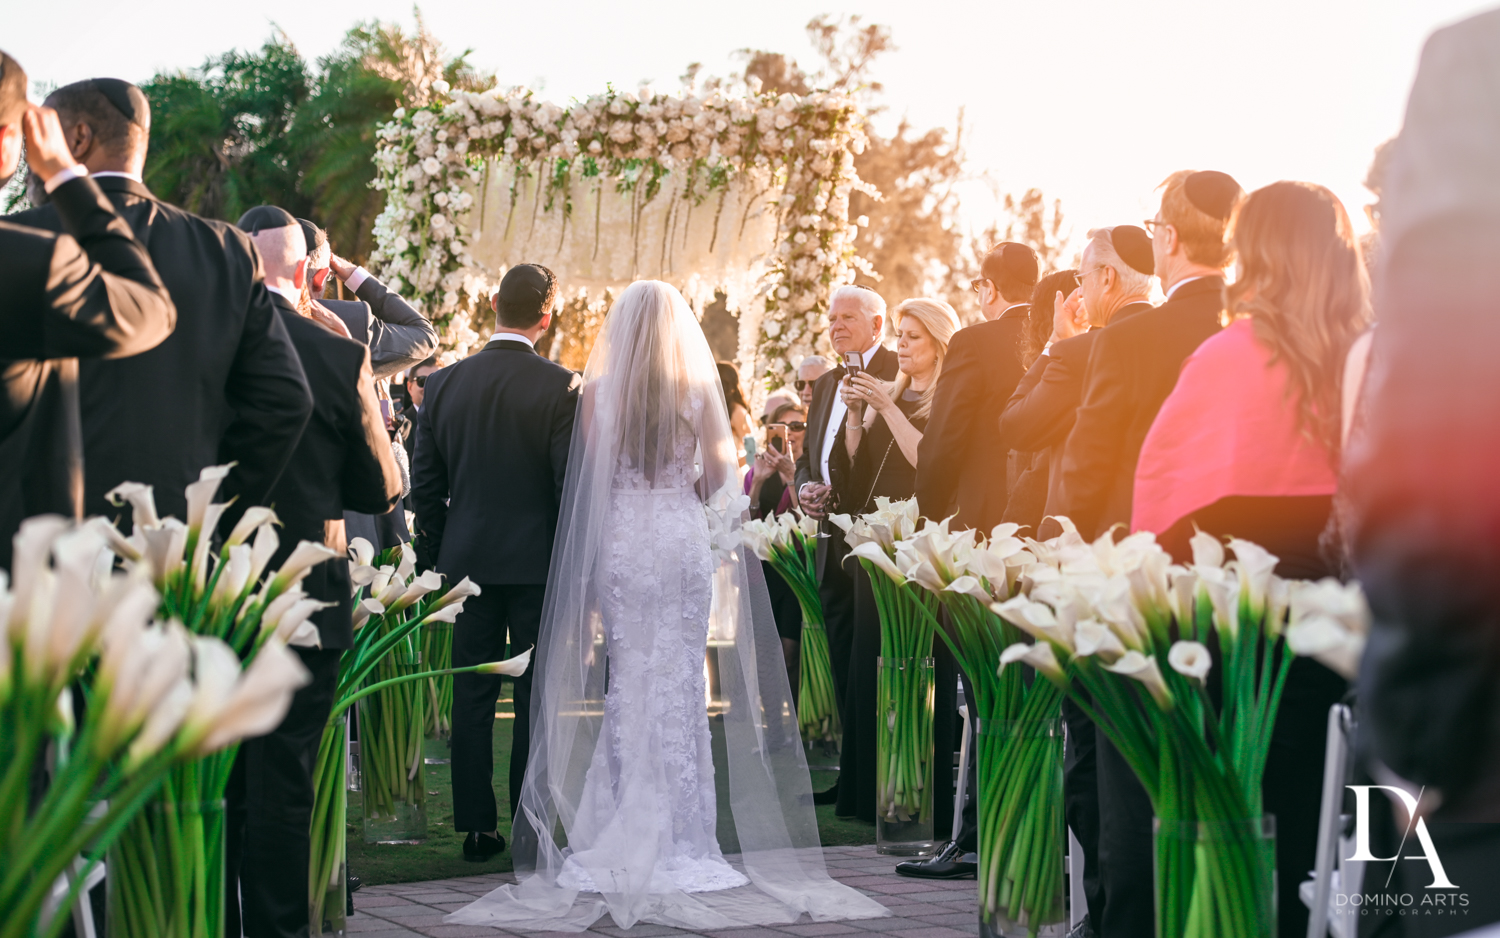 perfect ceremony at Sunset Wedding at Boca Rio Golf Club by Domino Arts Photography